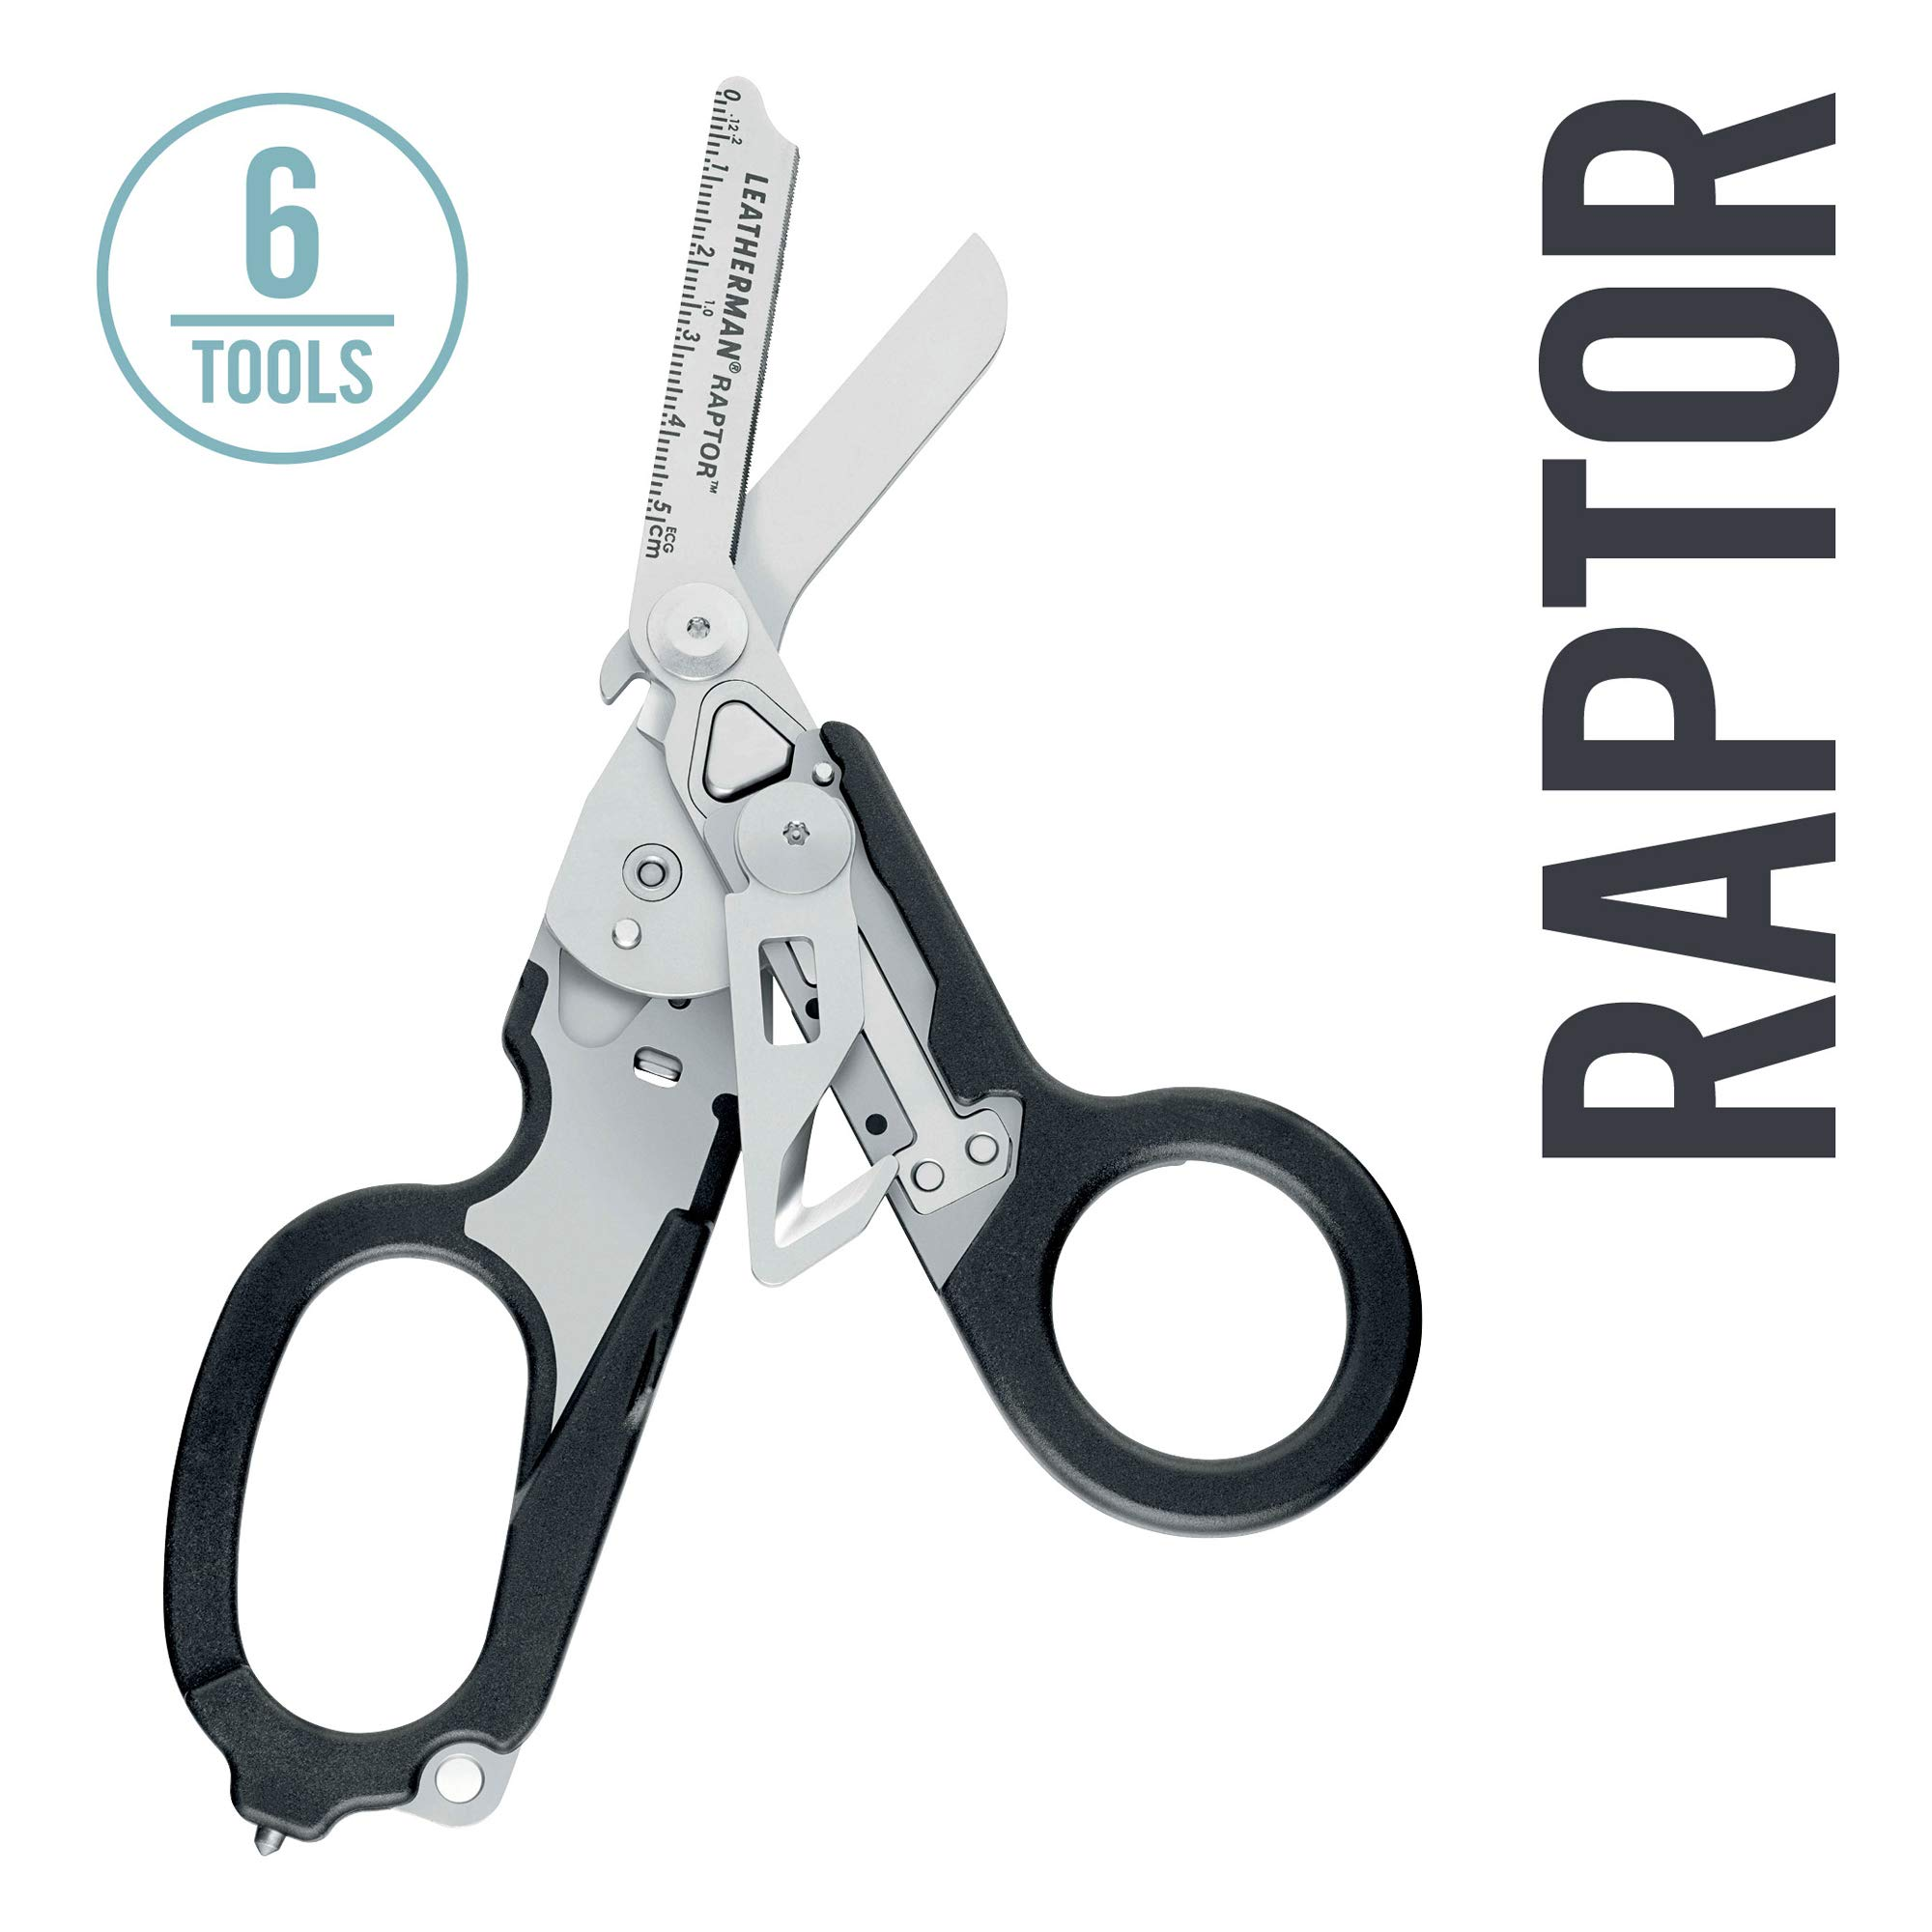 LEATHERMAN - Raptor Emergency Response Shears with Strap Cutter and Glass Breaker, Black with Utility Holster (FFP) by LEATHERMAN